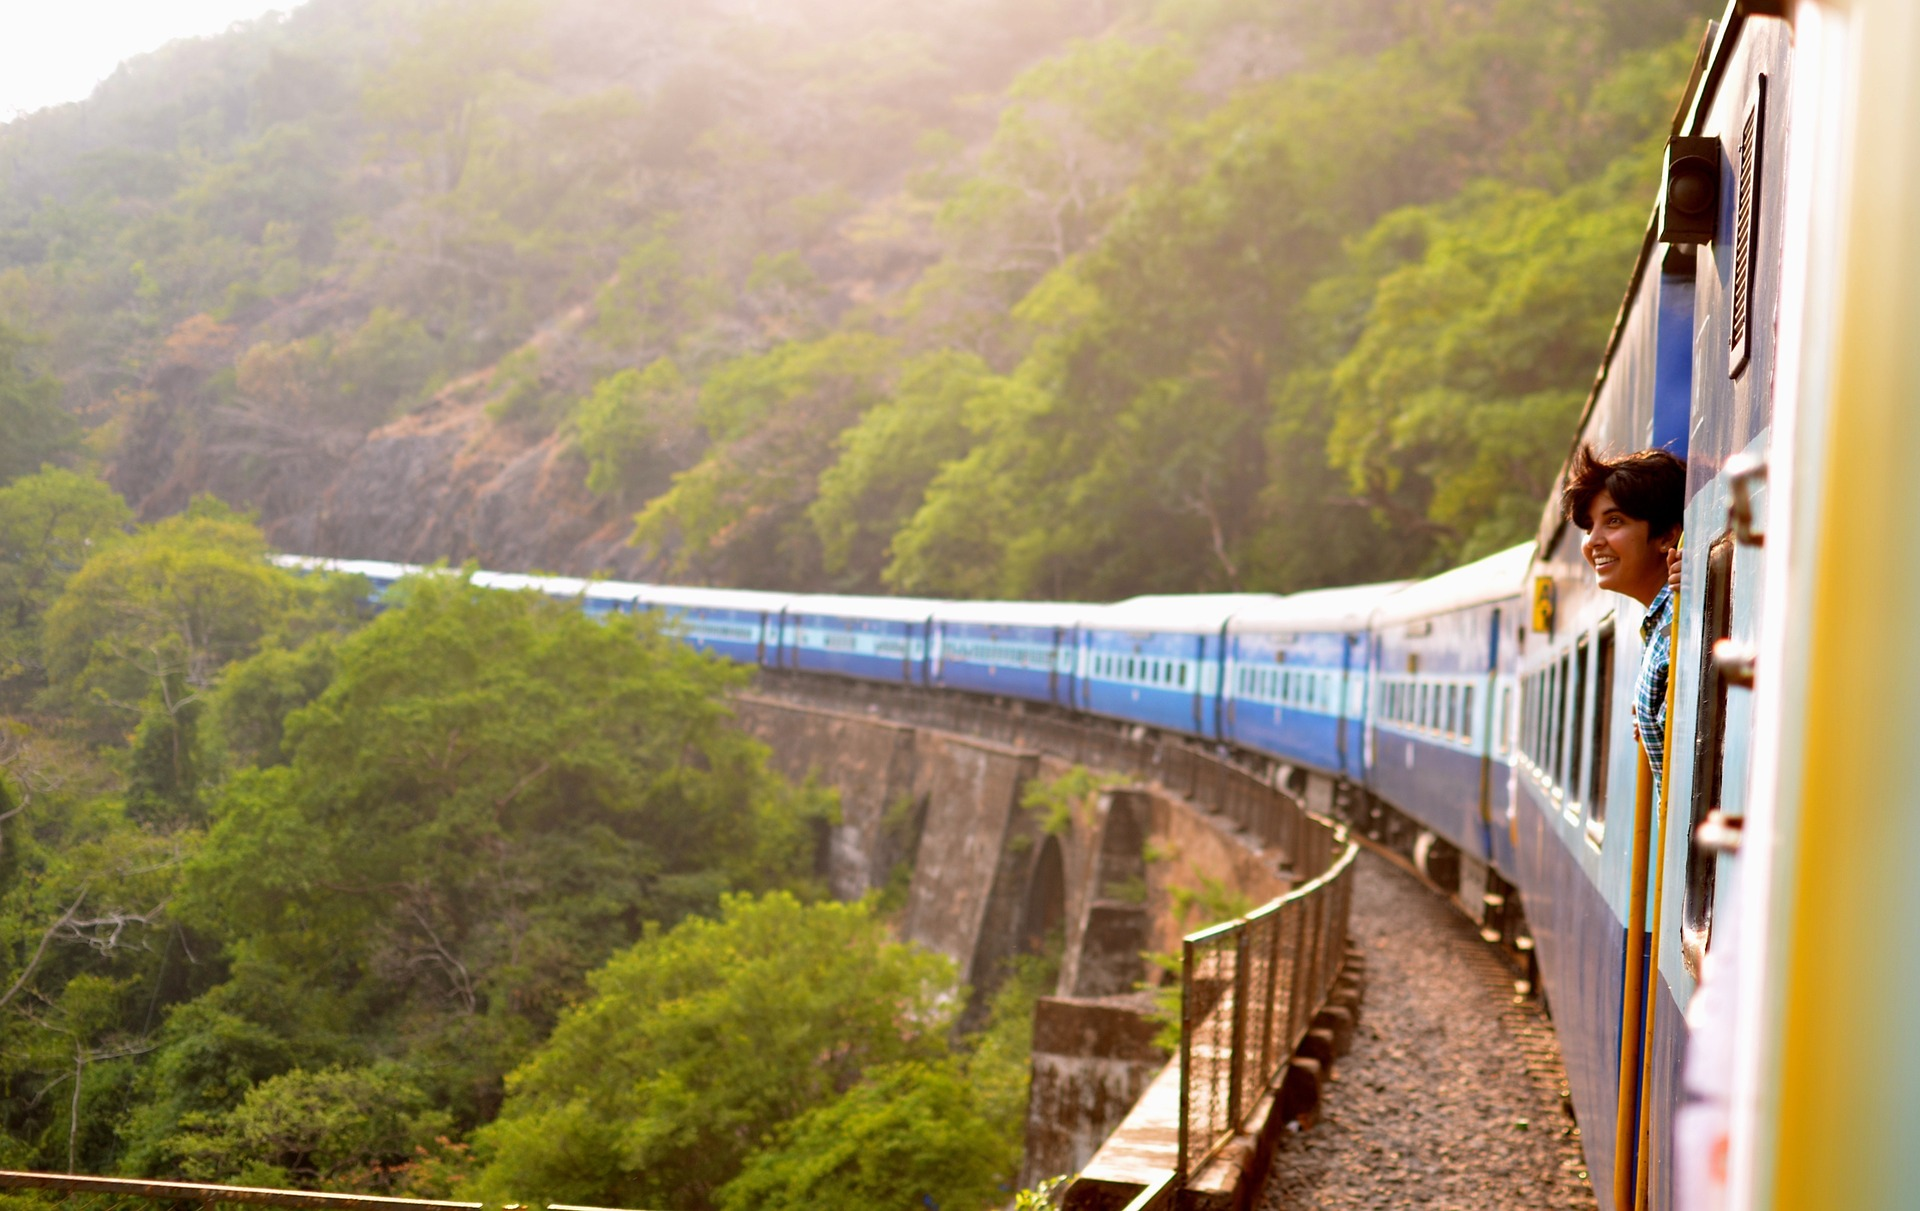 Getting a closeup view of nature is one advantage of train travel (Image:  Pixabay )